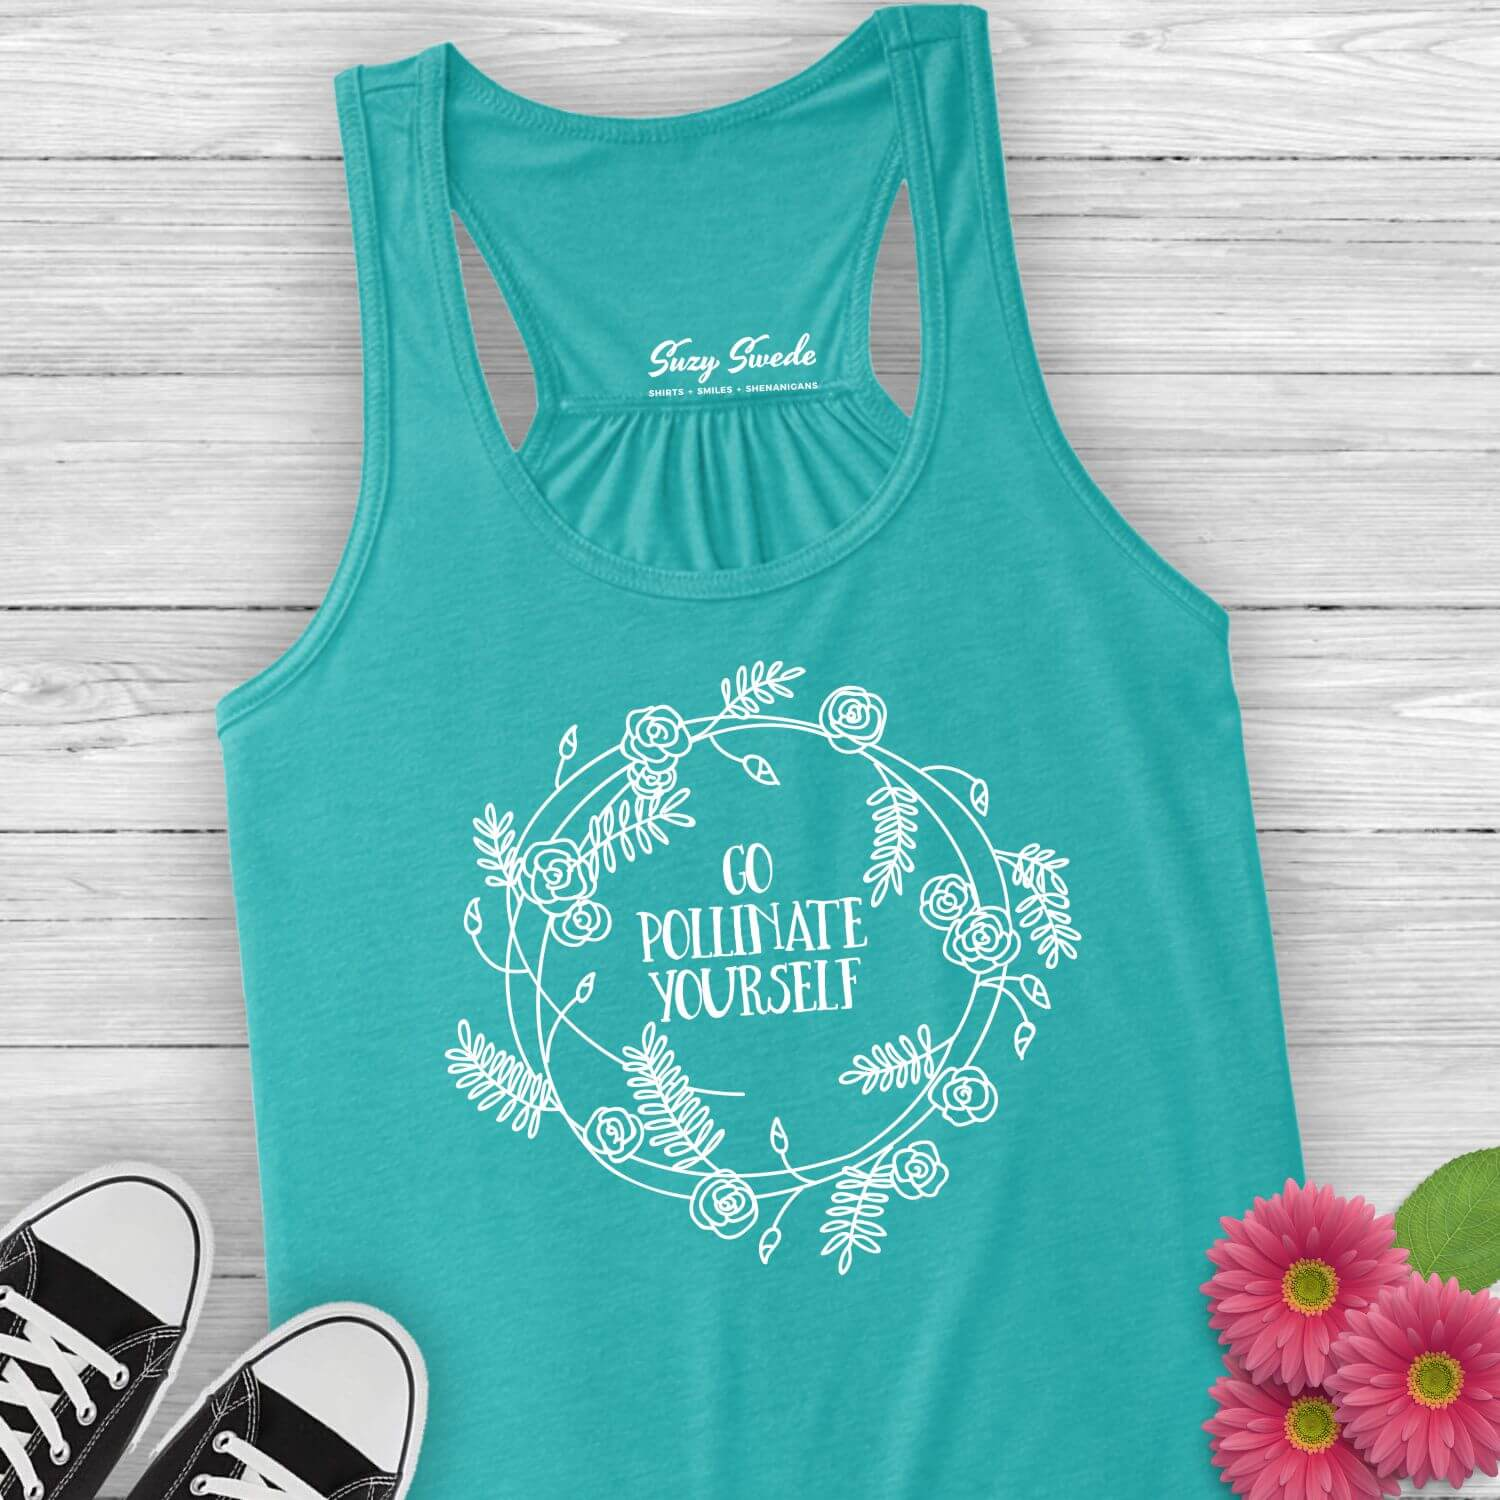 Go-Pollinate-Yourself-Ladies-Tank-Top